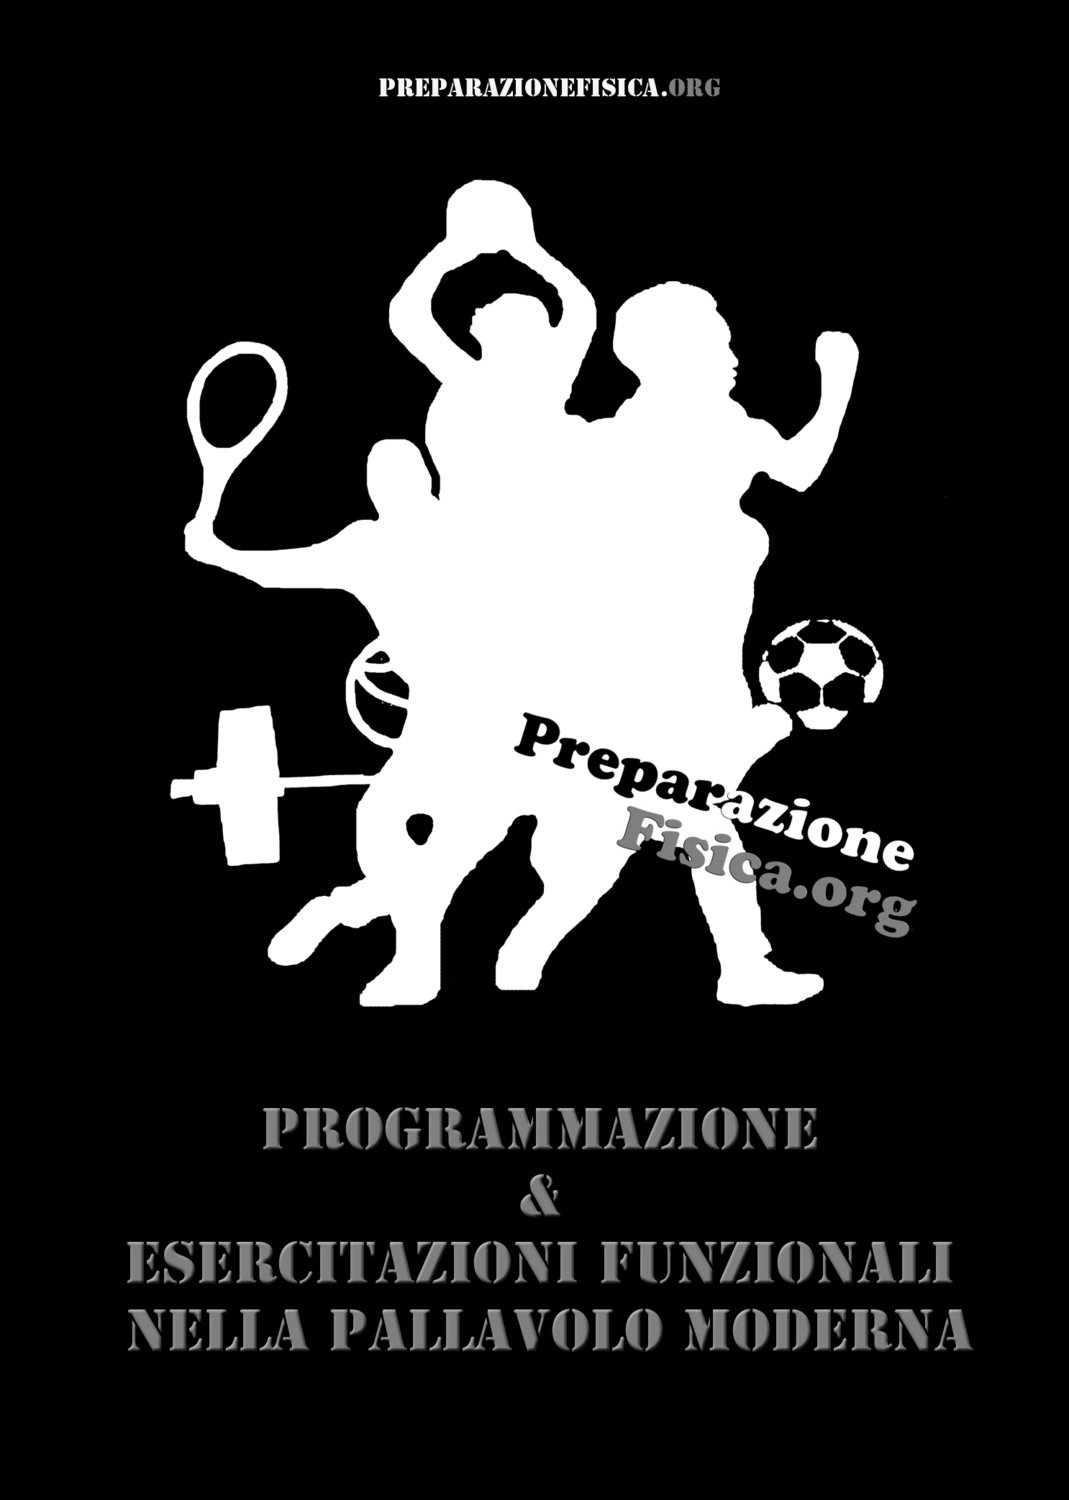 BLACK FRIDAY - DVD PREPARAZIONE FISICA - 2012